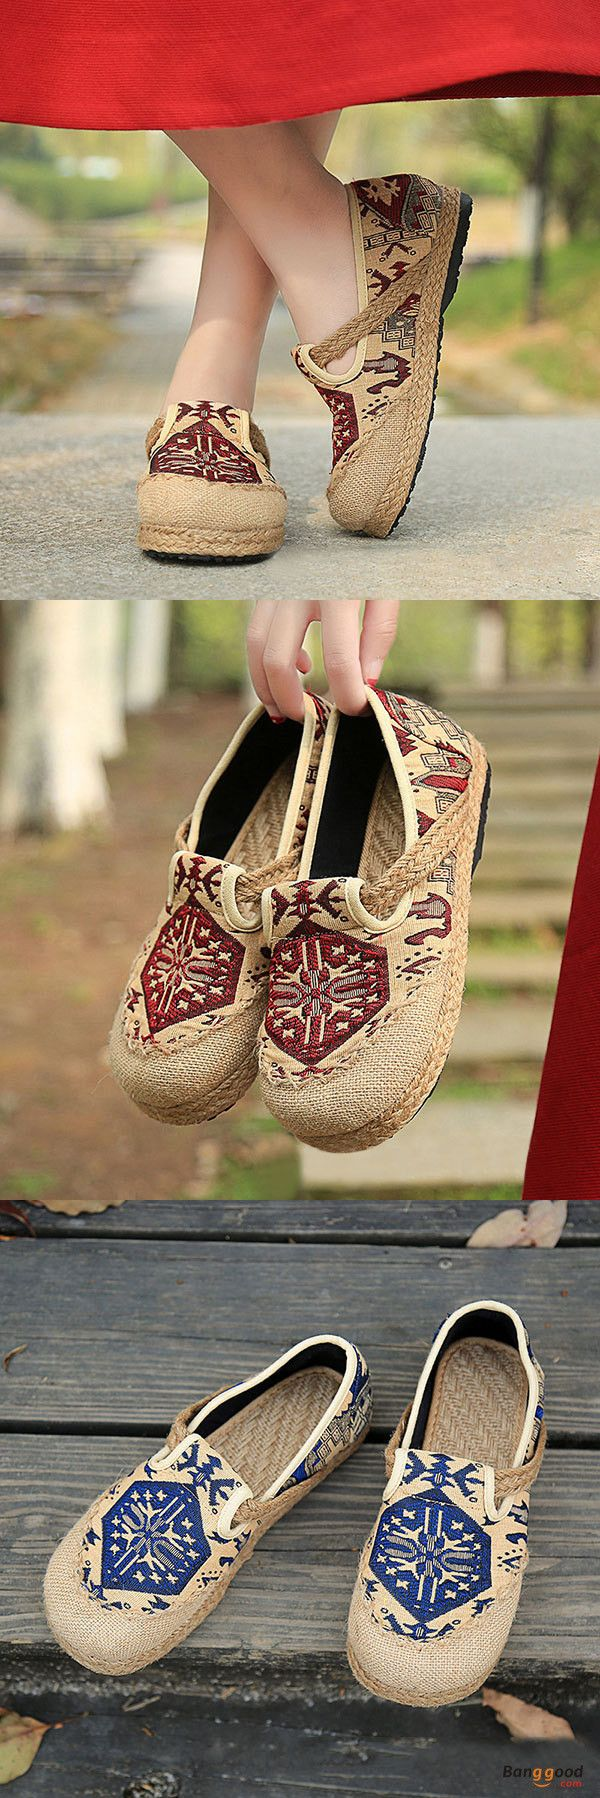 US$24.53+Free shipping.Summer Shoes, Women Flat Shoes, Shoes Flats, Women Fashion Casual, Women Fashion for Summer. Love retro style, casual, outdoor, comfortable. Heel Height: 1-3cm. Platform Height: 1-3cm. Color: Red, Wine Red, Blue, Green. Size(US): 5-9.